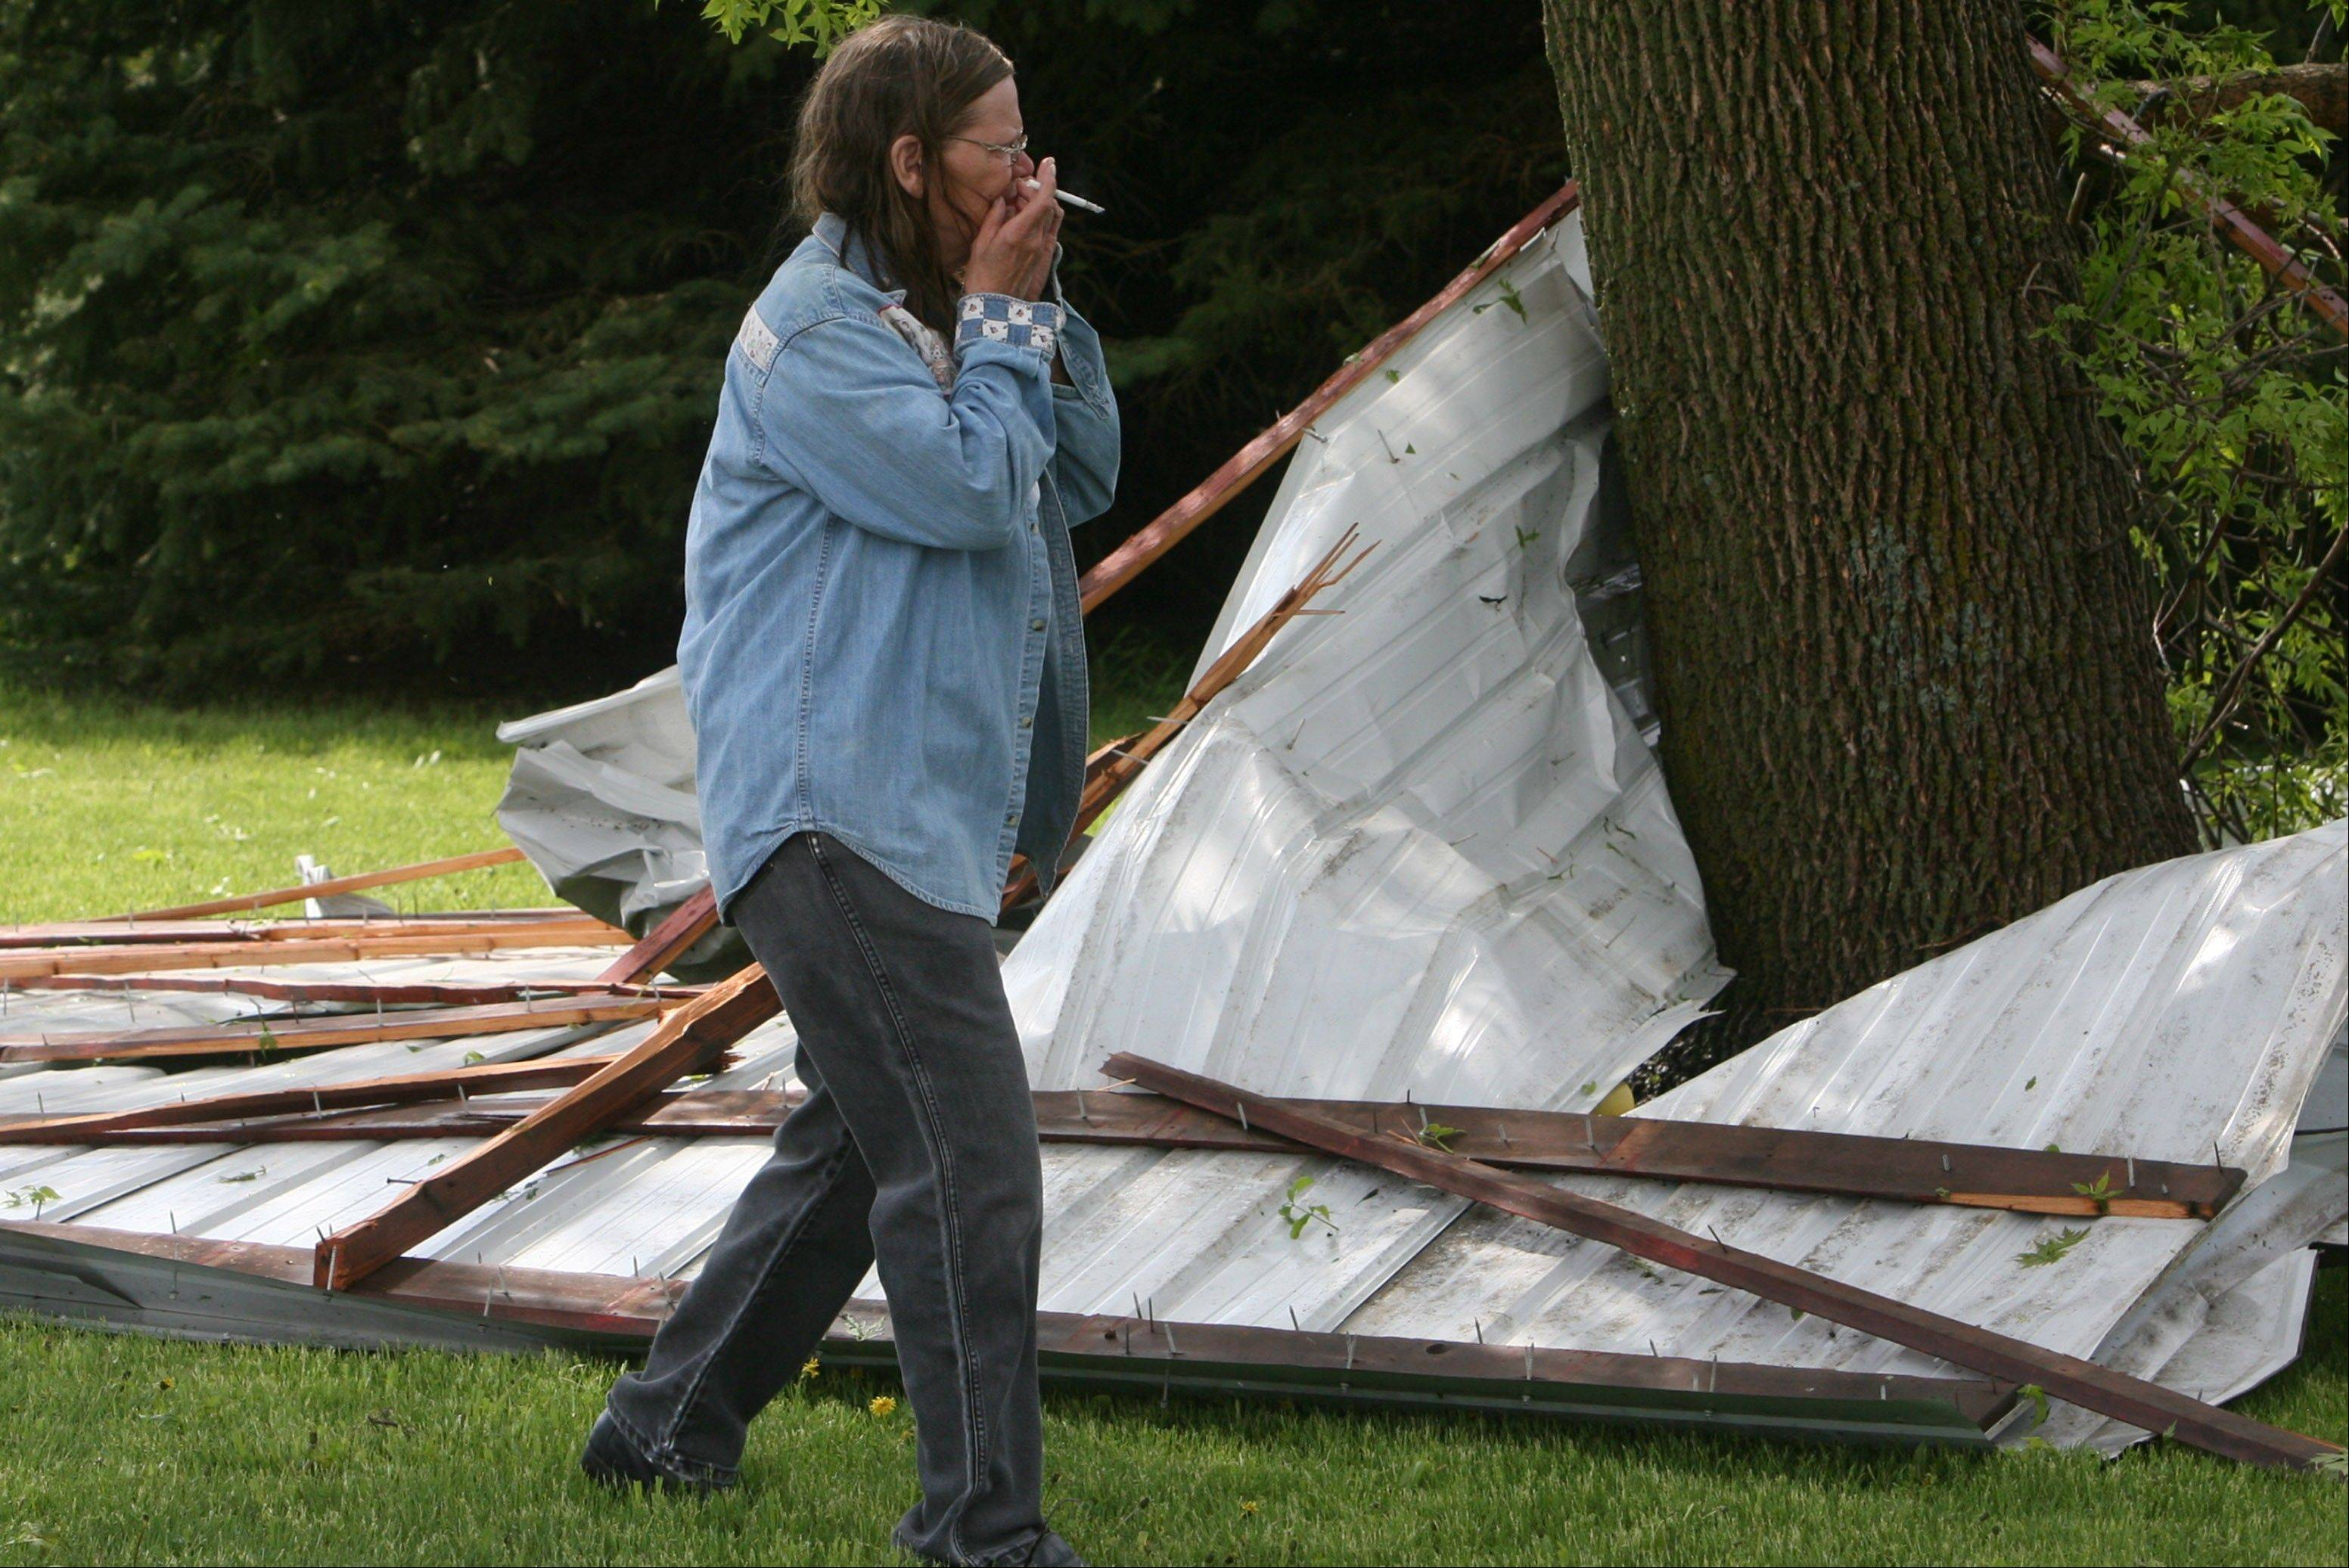 June McFarland reacts to the first sight of storm damage in rural Osage, Iowa on Sunday, May 19, 2013. A powerful weather system moved through the area on Sunday afternoon triggering tornado warnings, high winds and hail.